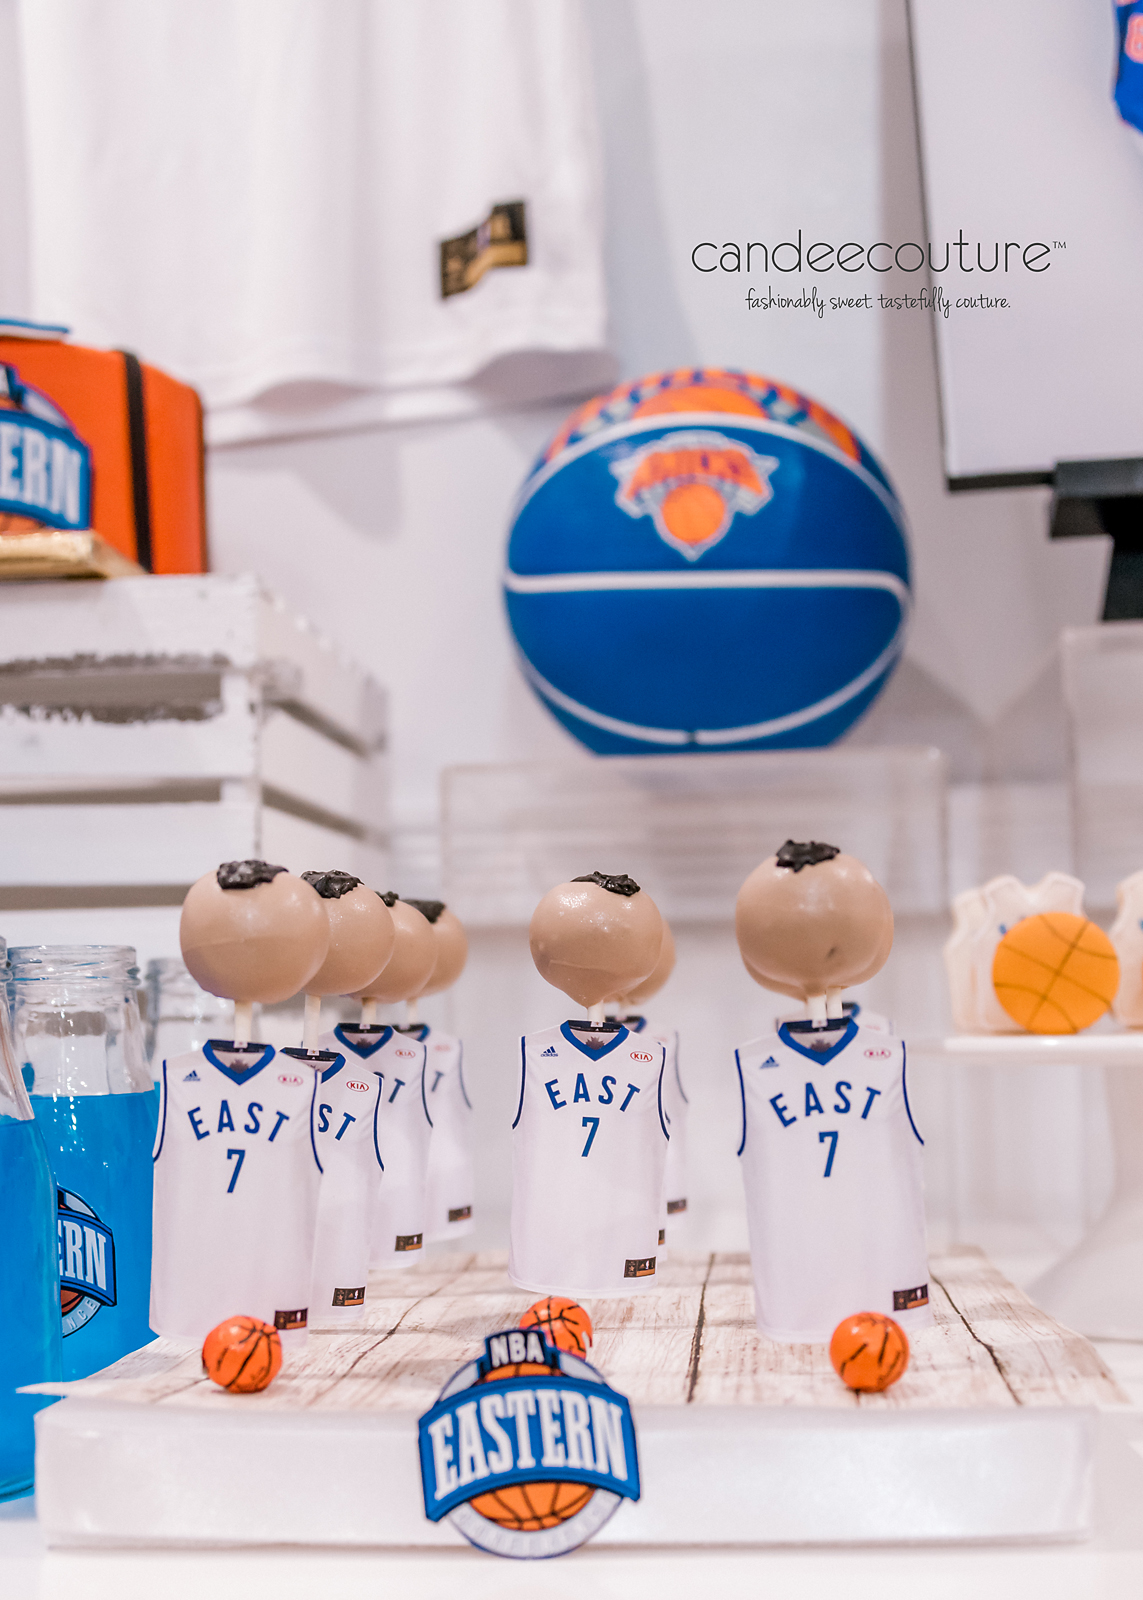 NBA jersey cake pops, NBA cake pops, eastern conference cake pops, NBA eastern conference cake pops, NBA eastern conference all-star cake pops, Basketball treats, NBA basketball cake pops, NBA All-star desserts, candy table, sweet table, nba themed party, new york knicks party, nba all-star theme party, birthday, nba all-star theme, nba cake, basketball, basketball desserts nba theme table, nba all-star theme table, new york knicks dessert table, knicks sweet table